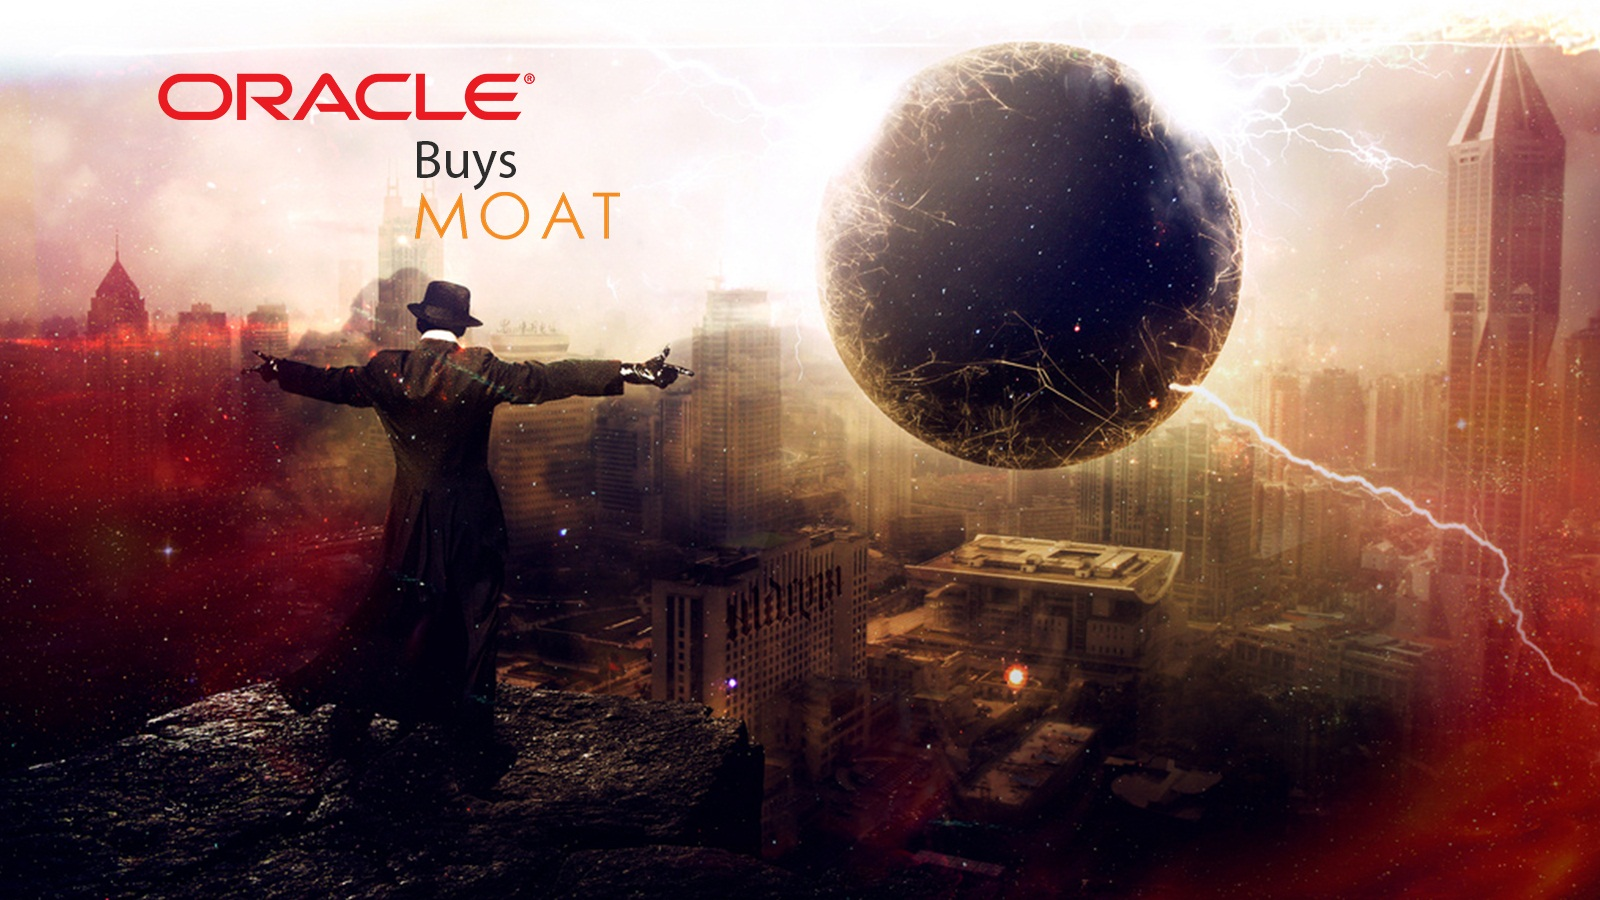 Oracle adds attention analytics to its data cloud with Moat buy